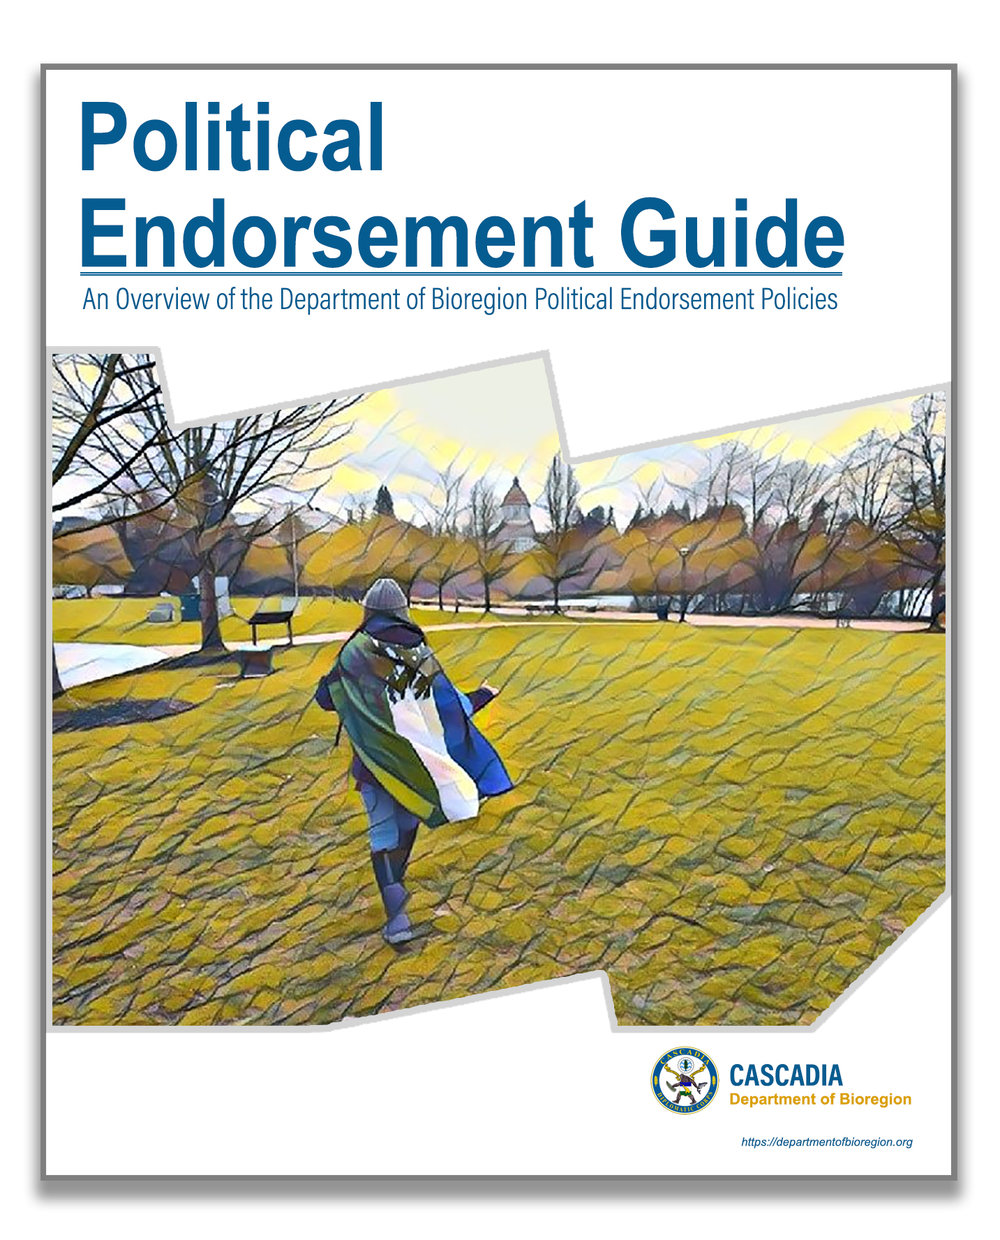 CASCADIA DEPARTMENT OF BIOREGION POLITICAL ENDORSEMENT POLICY (PDF)